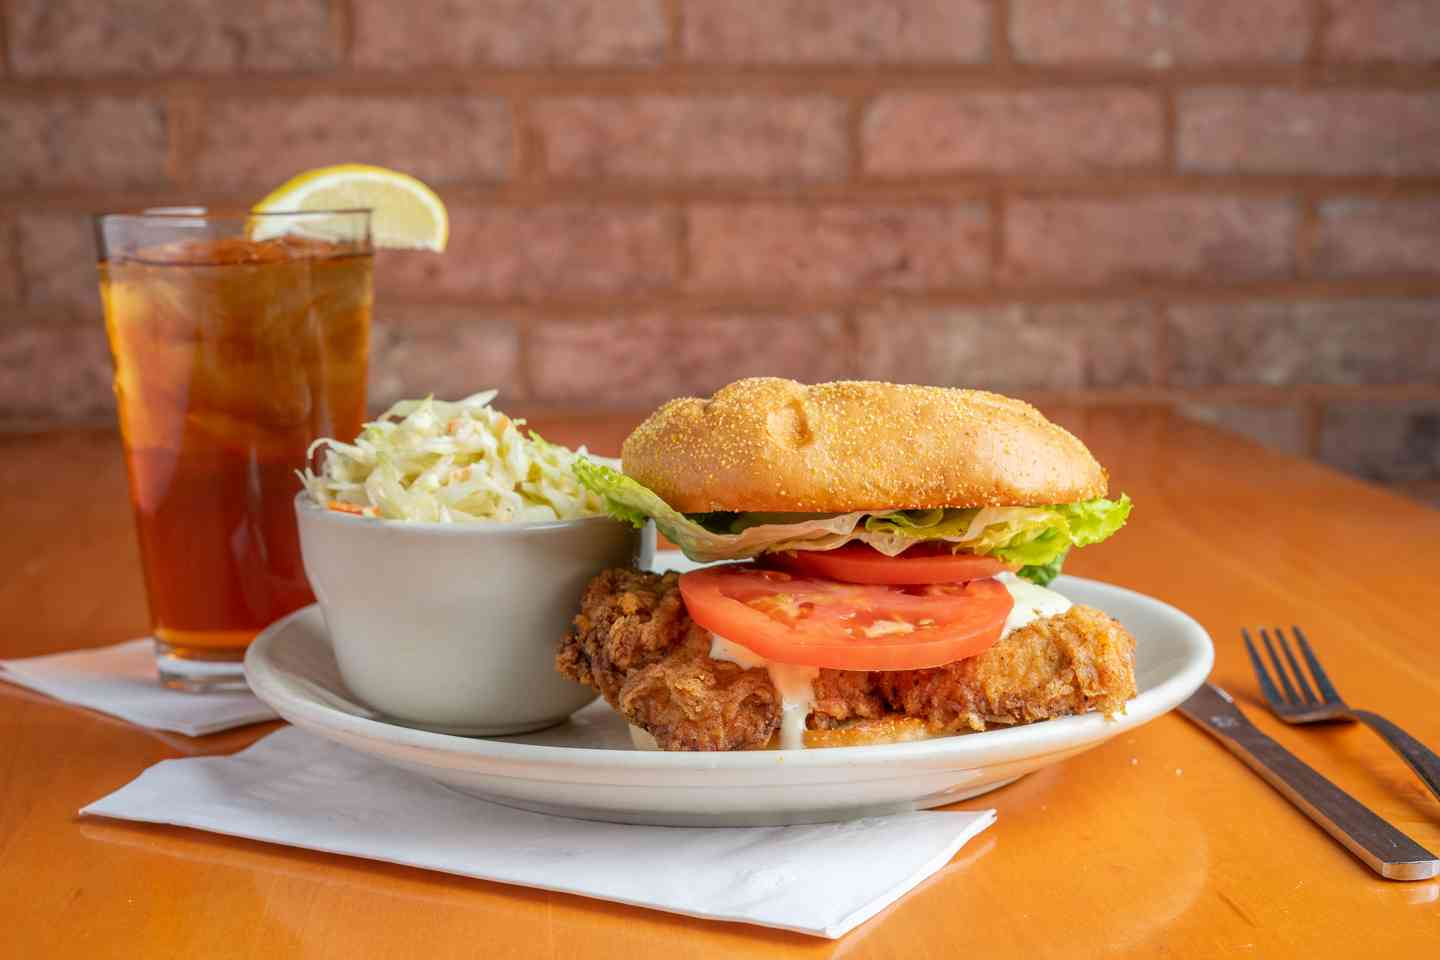 The Big Fried Chicken Sandwich